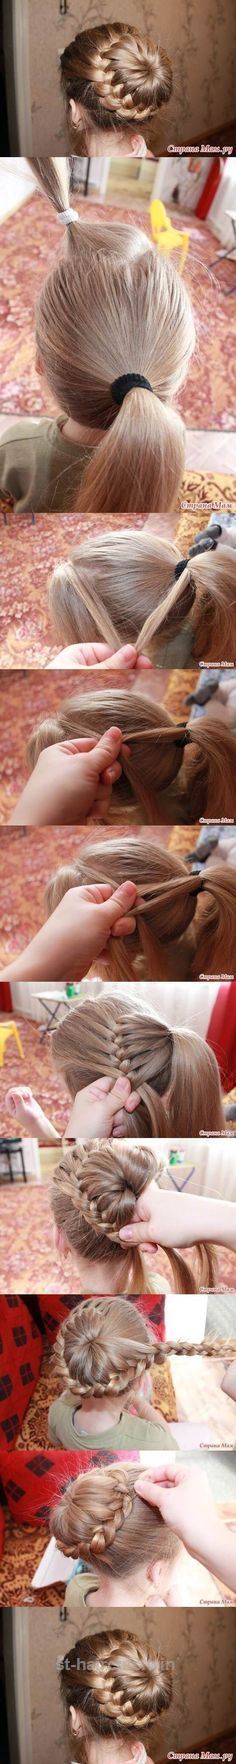 Adorable Latest Adorable Hairstyles for Little Girls Cute hairstyles for girls are the fastest changing sector of hair-fashion, so if you haven't checked what's new for ..